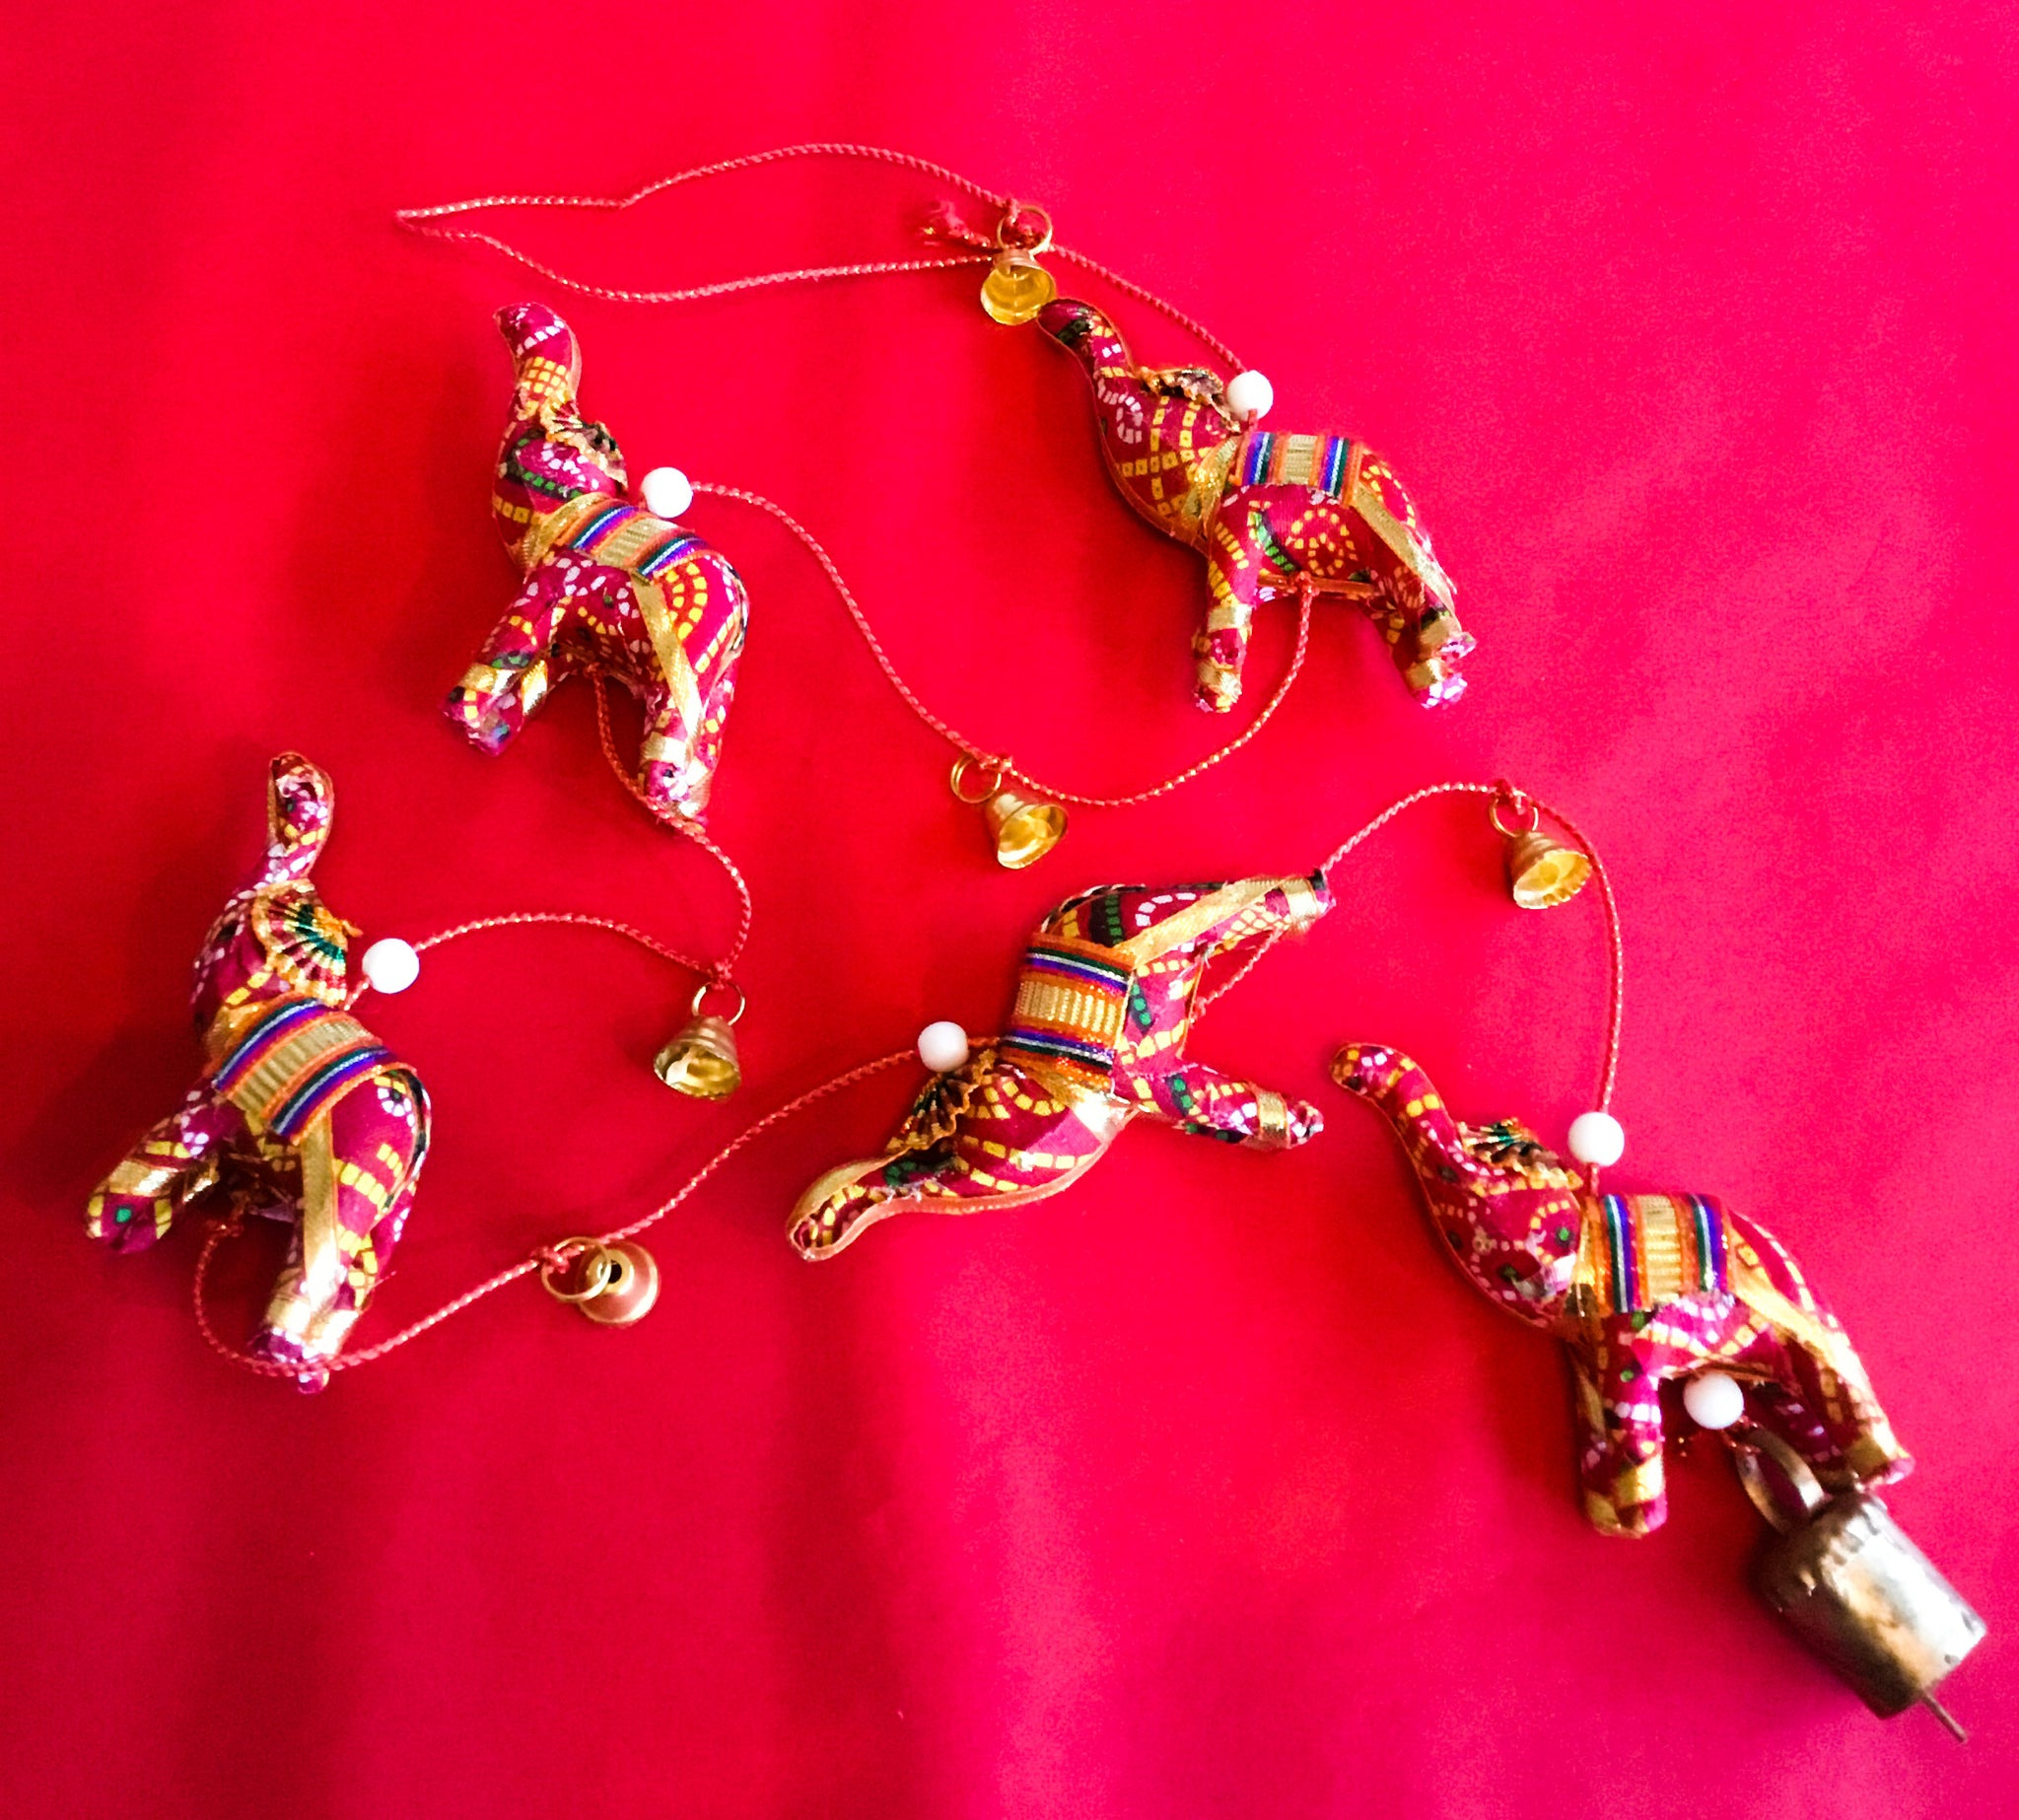 String of 5 mini gilded elephants with bells